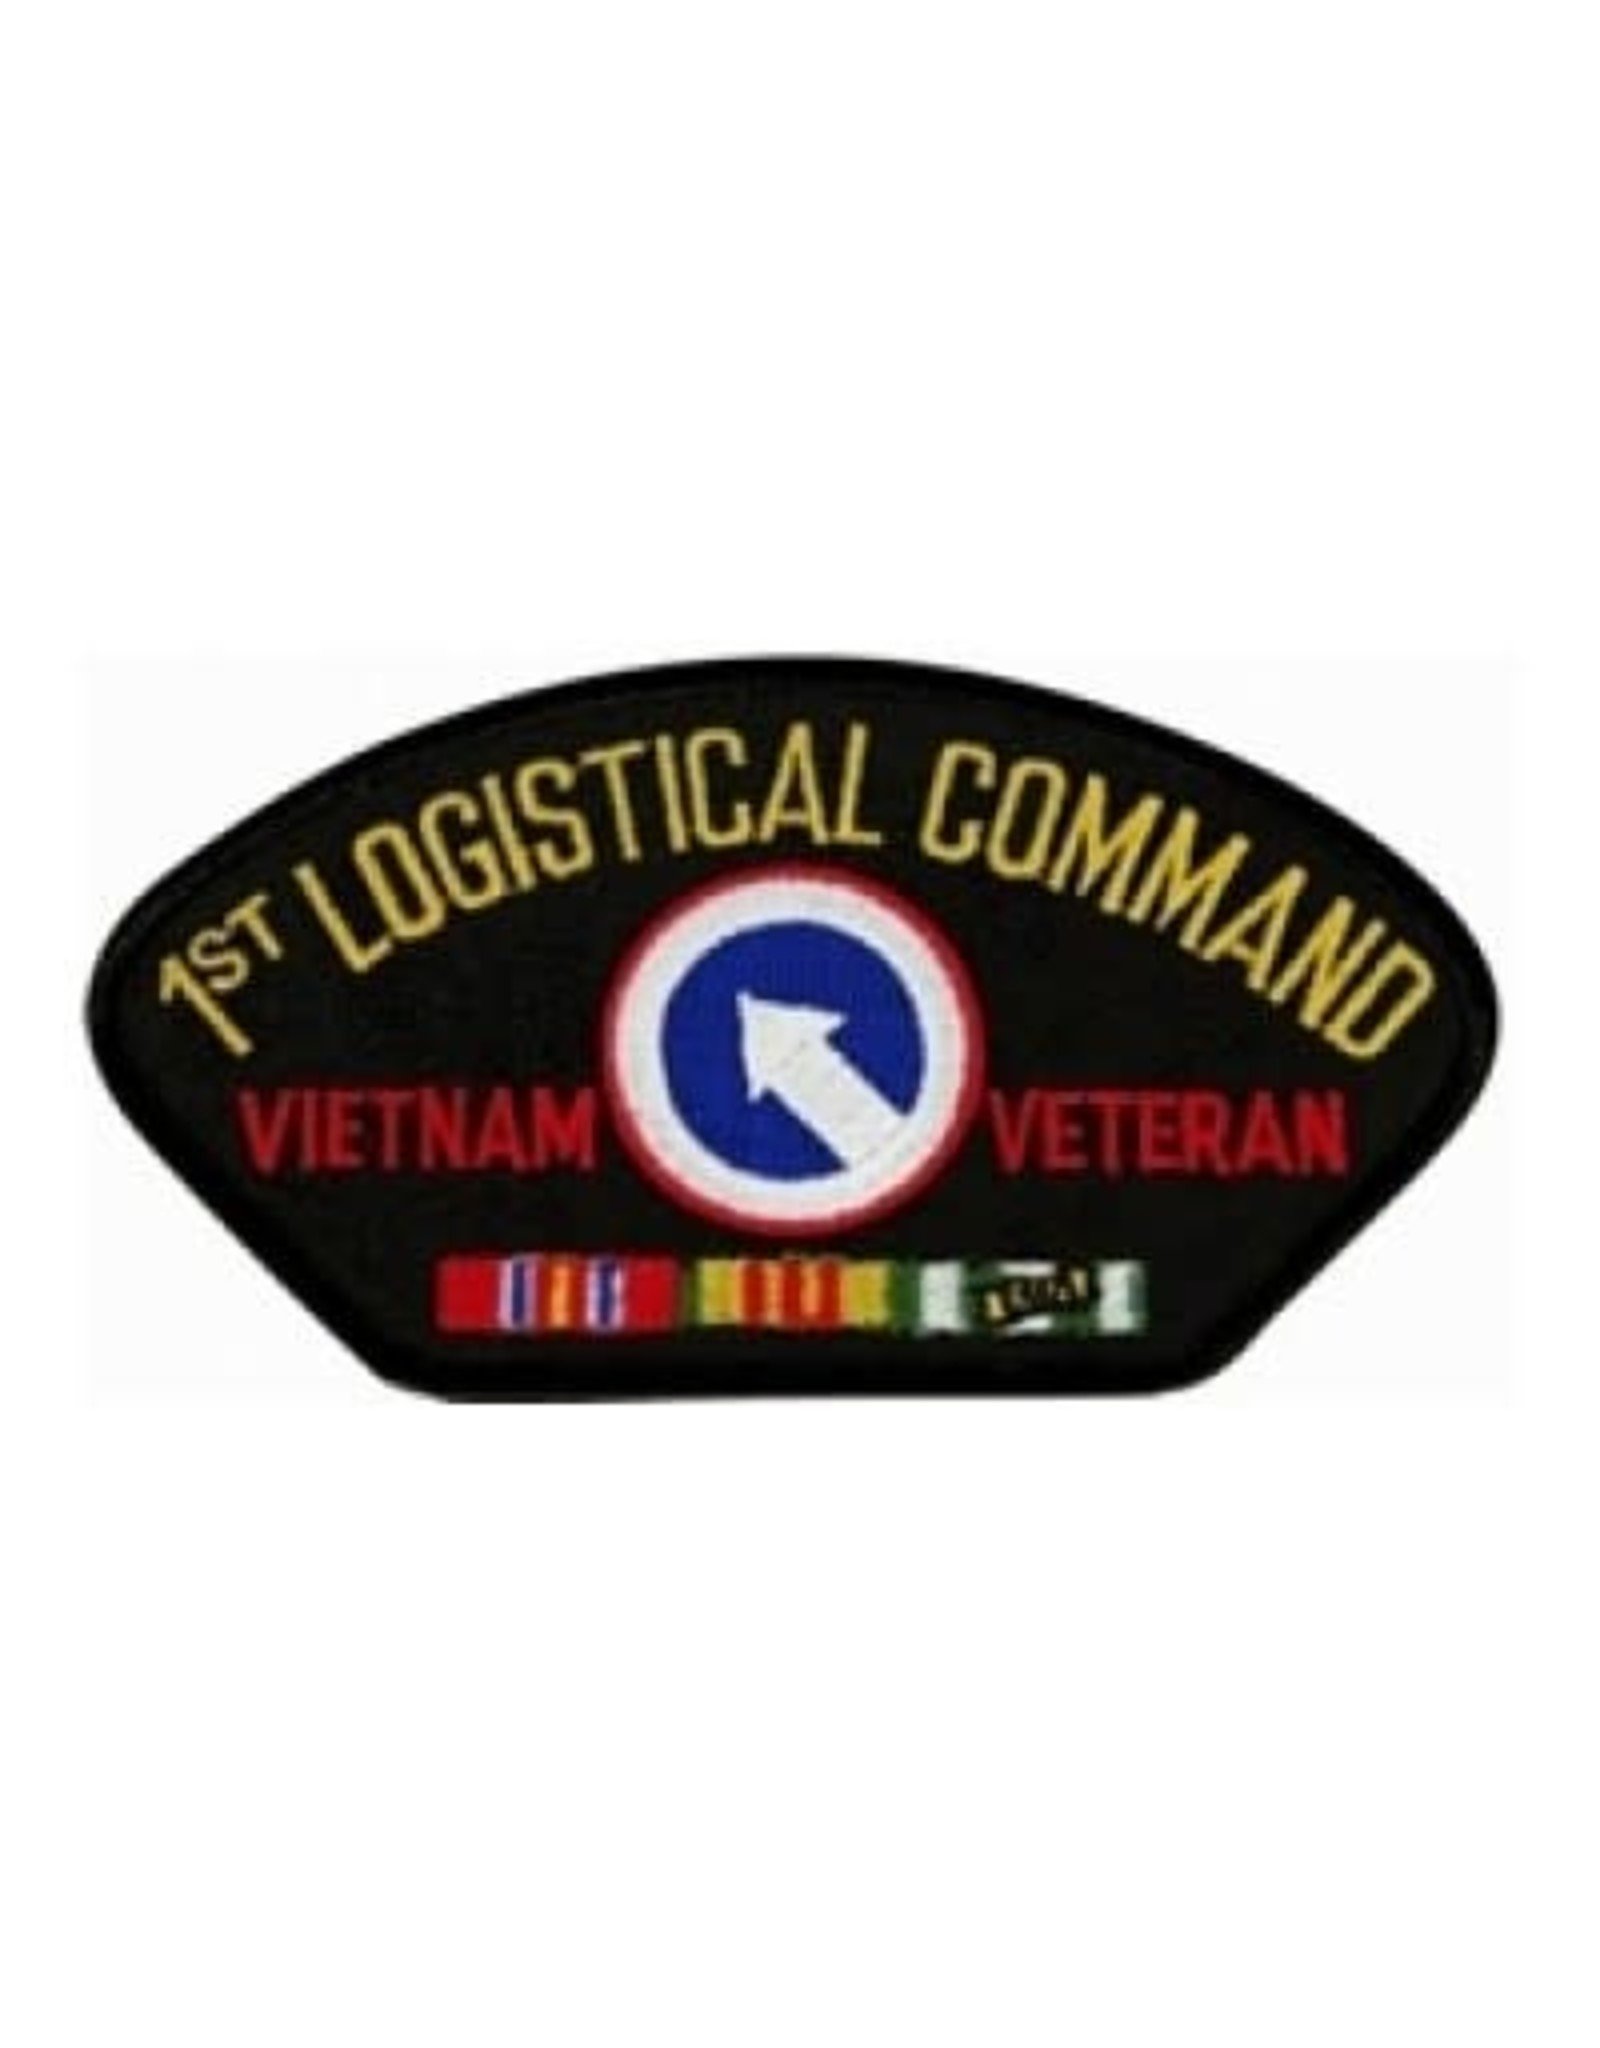 """MidMil Embroidered 1st Logistical Command Vietnam Veteran Patch with Emblem and Ribbons 5.2"""" wide x 2.7"""" high Black"""